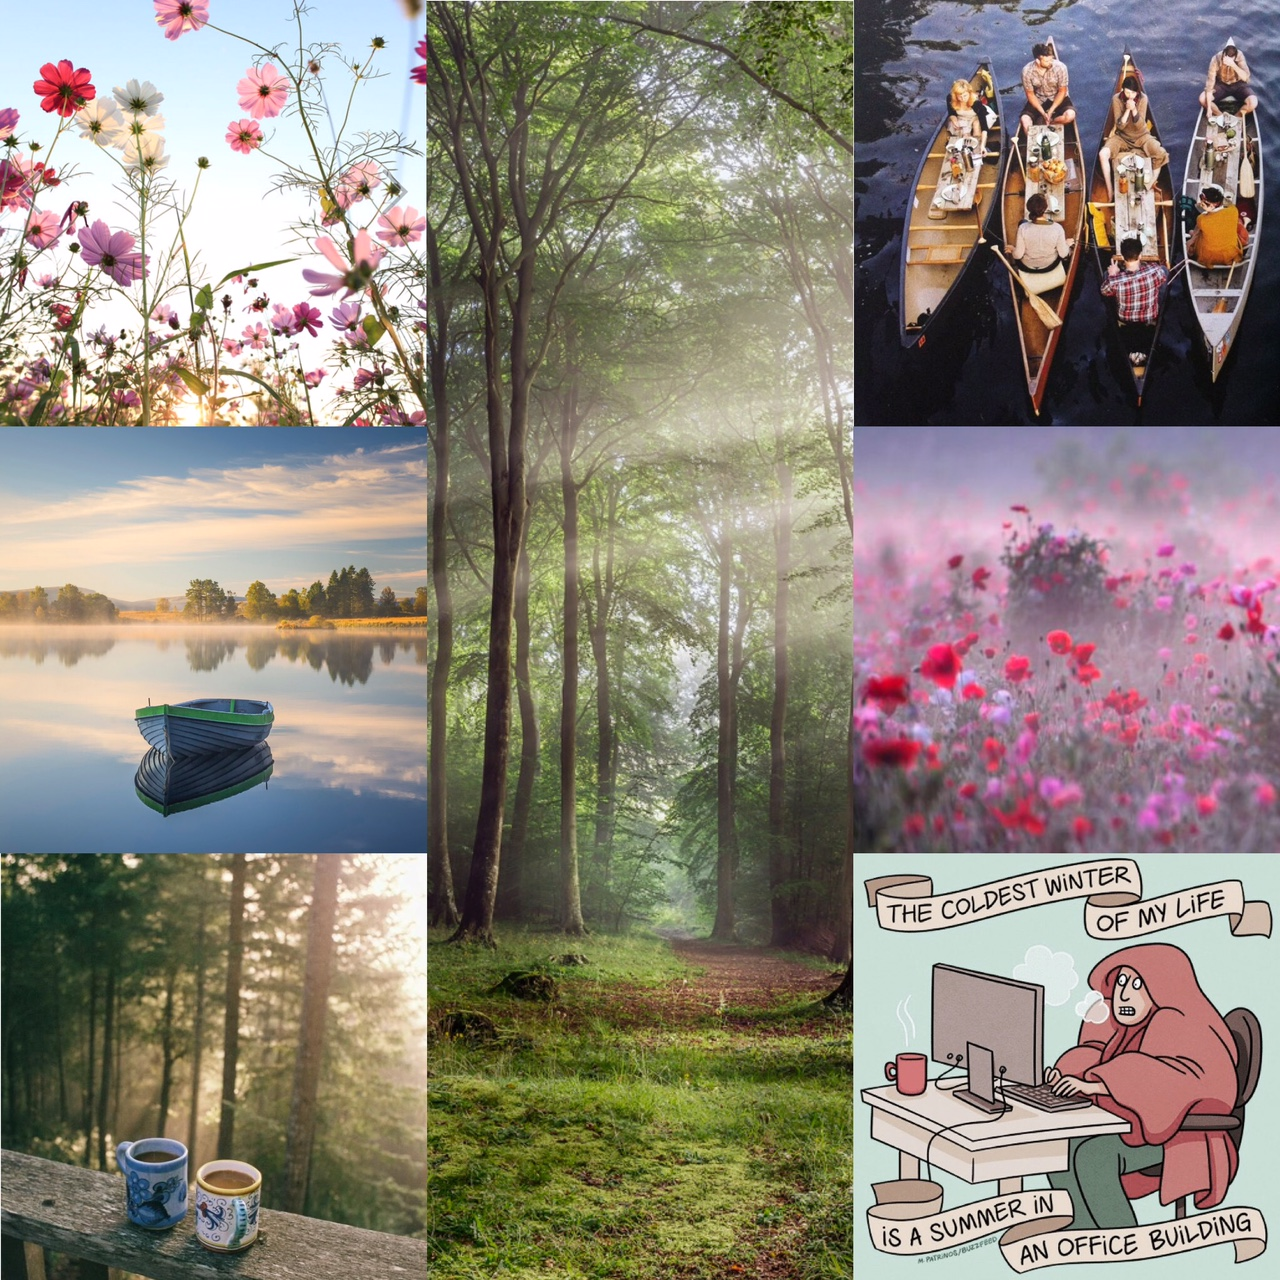 sources:  Cosmo  Forest  Boating party  poppies   Office meme  Coffee Cups  Lake